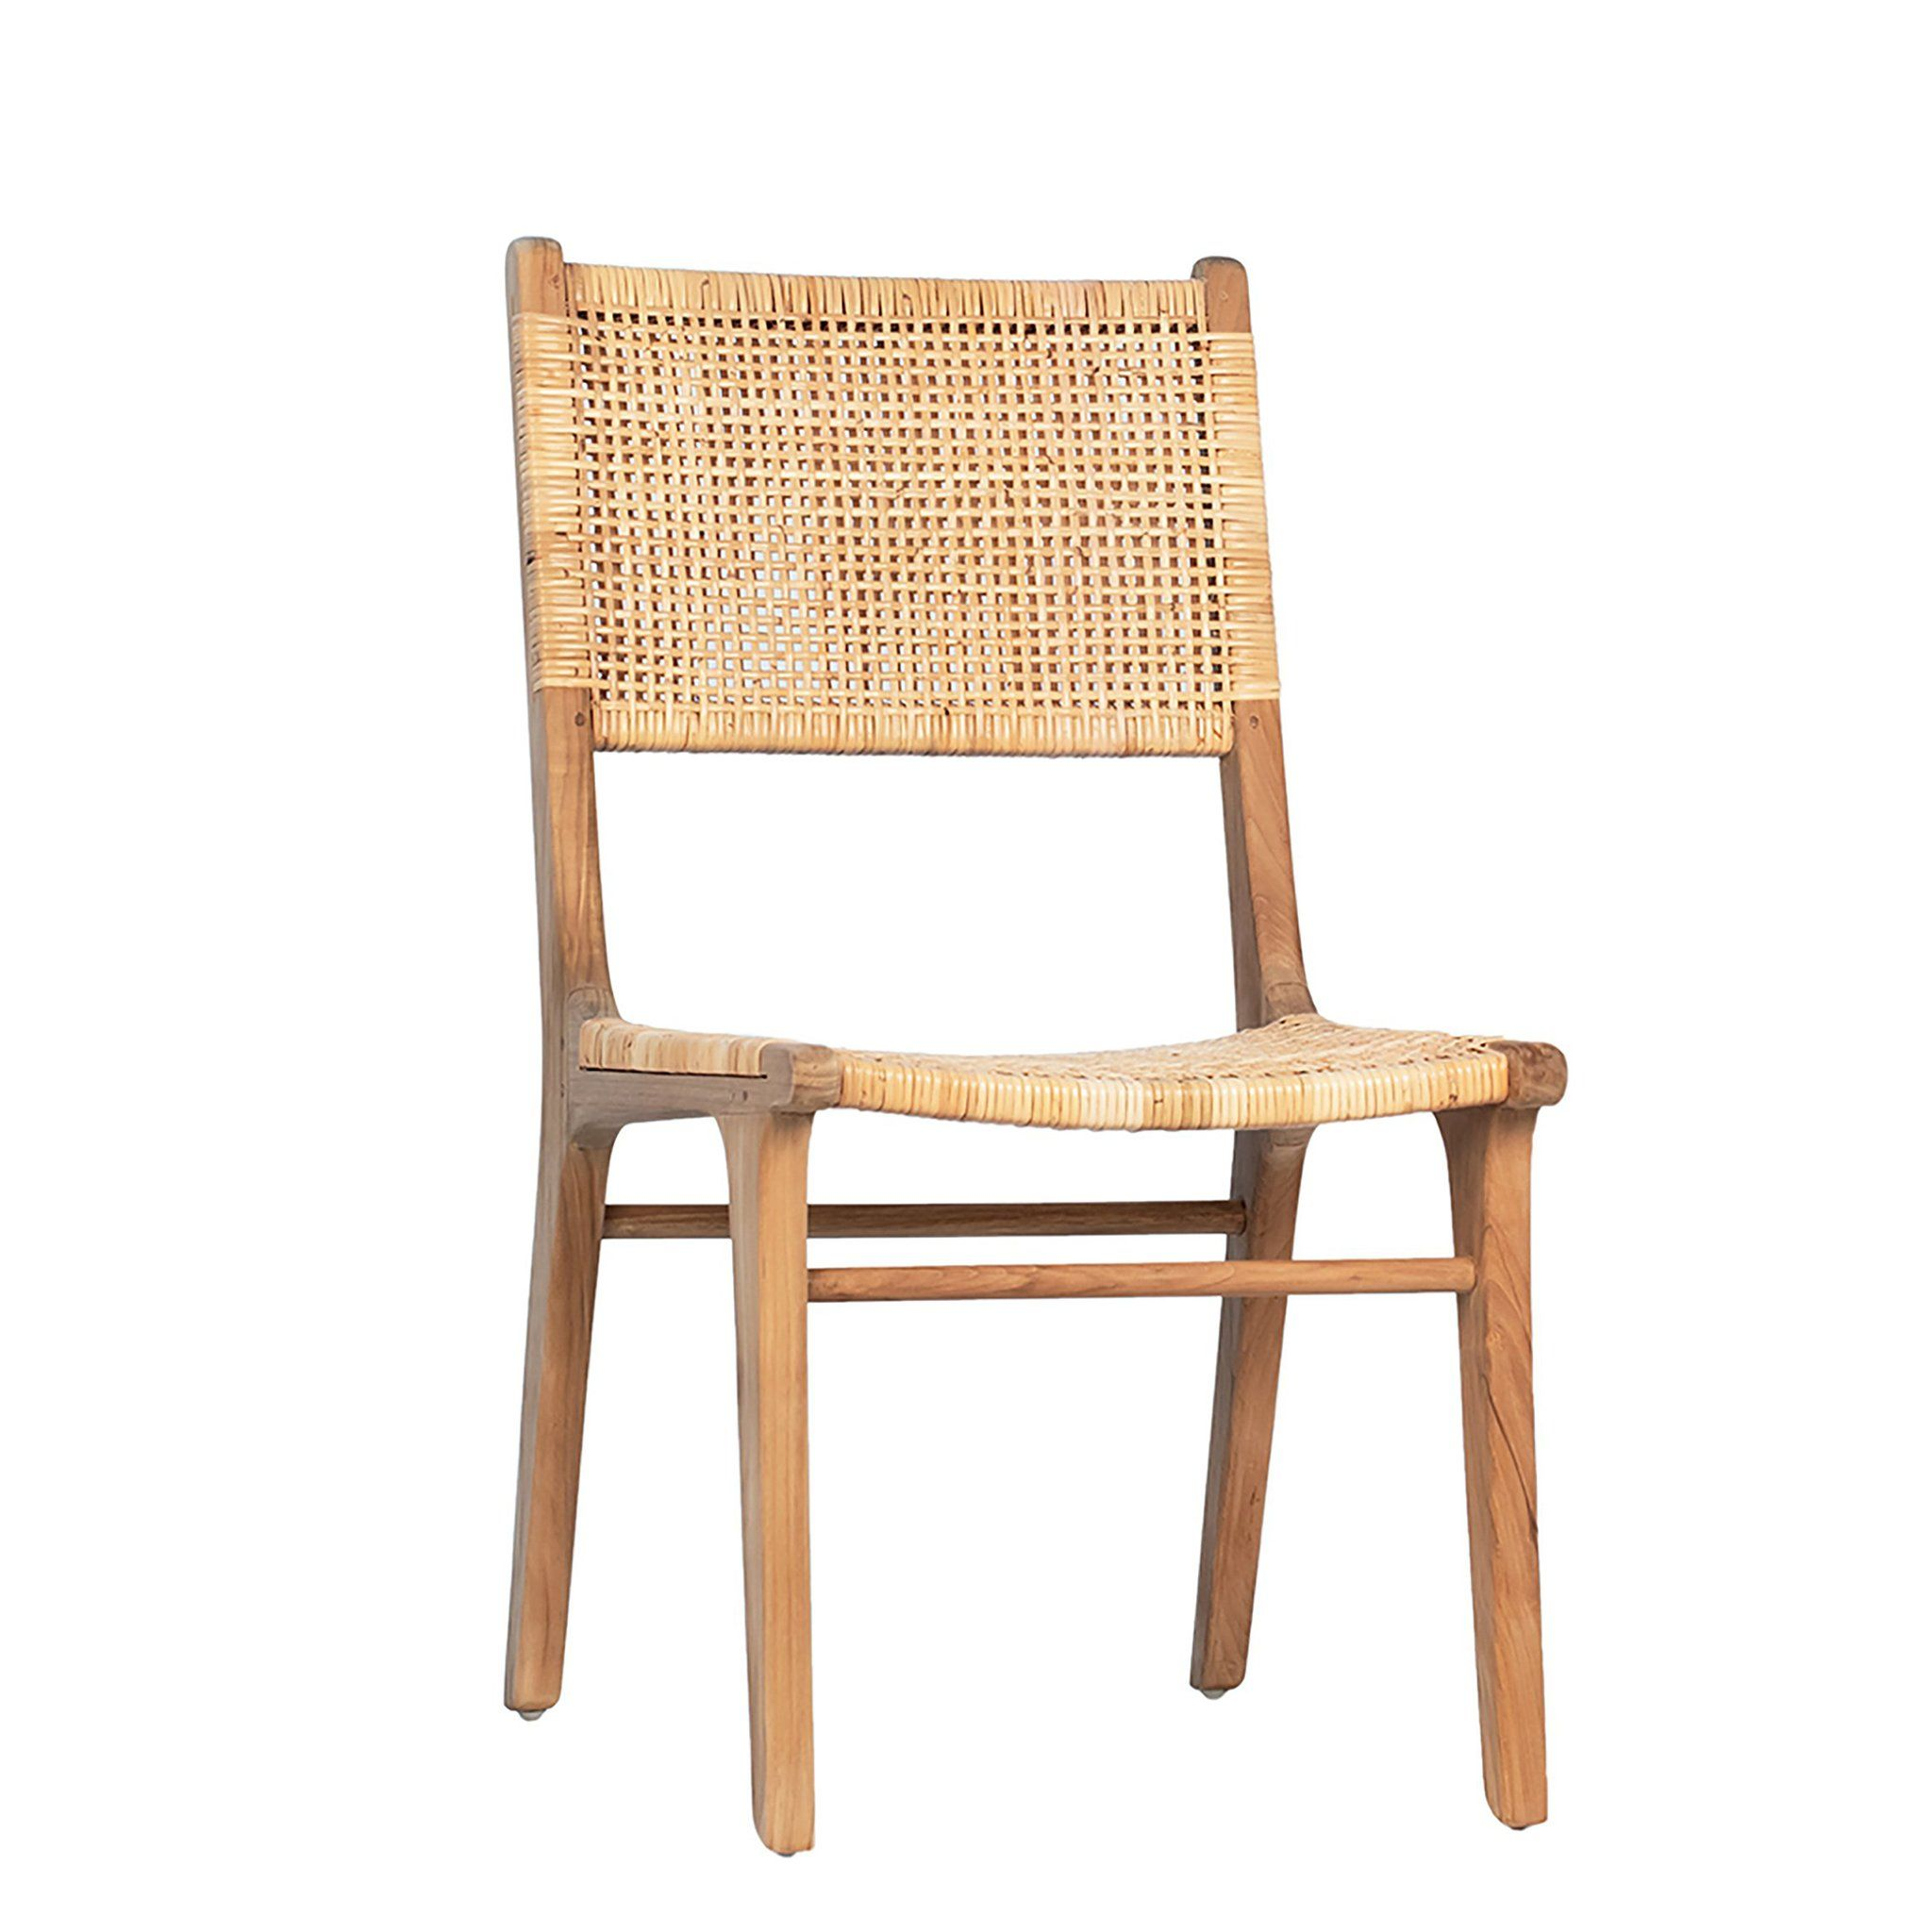 Emo Dining Chair In 2021 Wicker Dining Chairs Teak Dining Chairs Dining Chairs